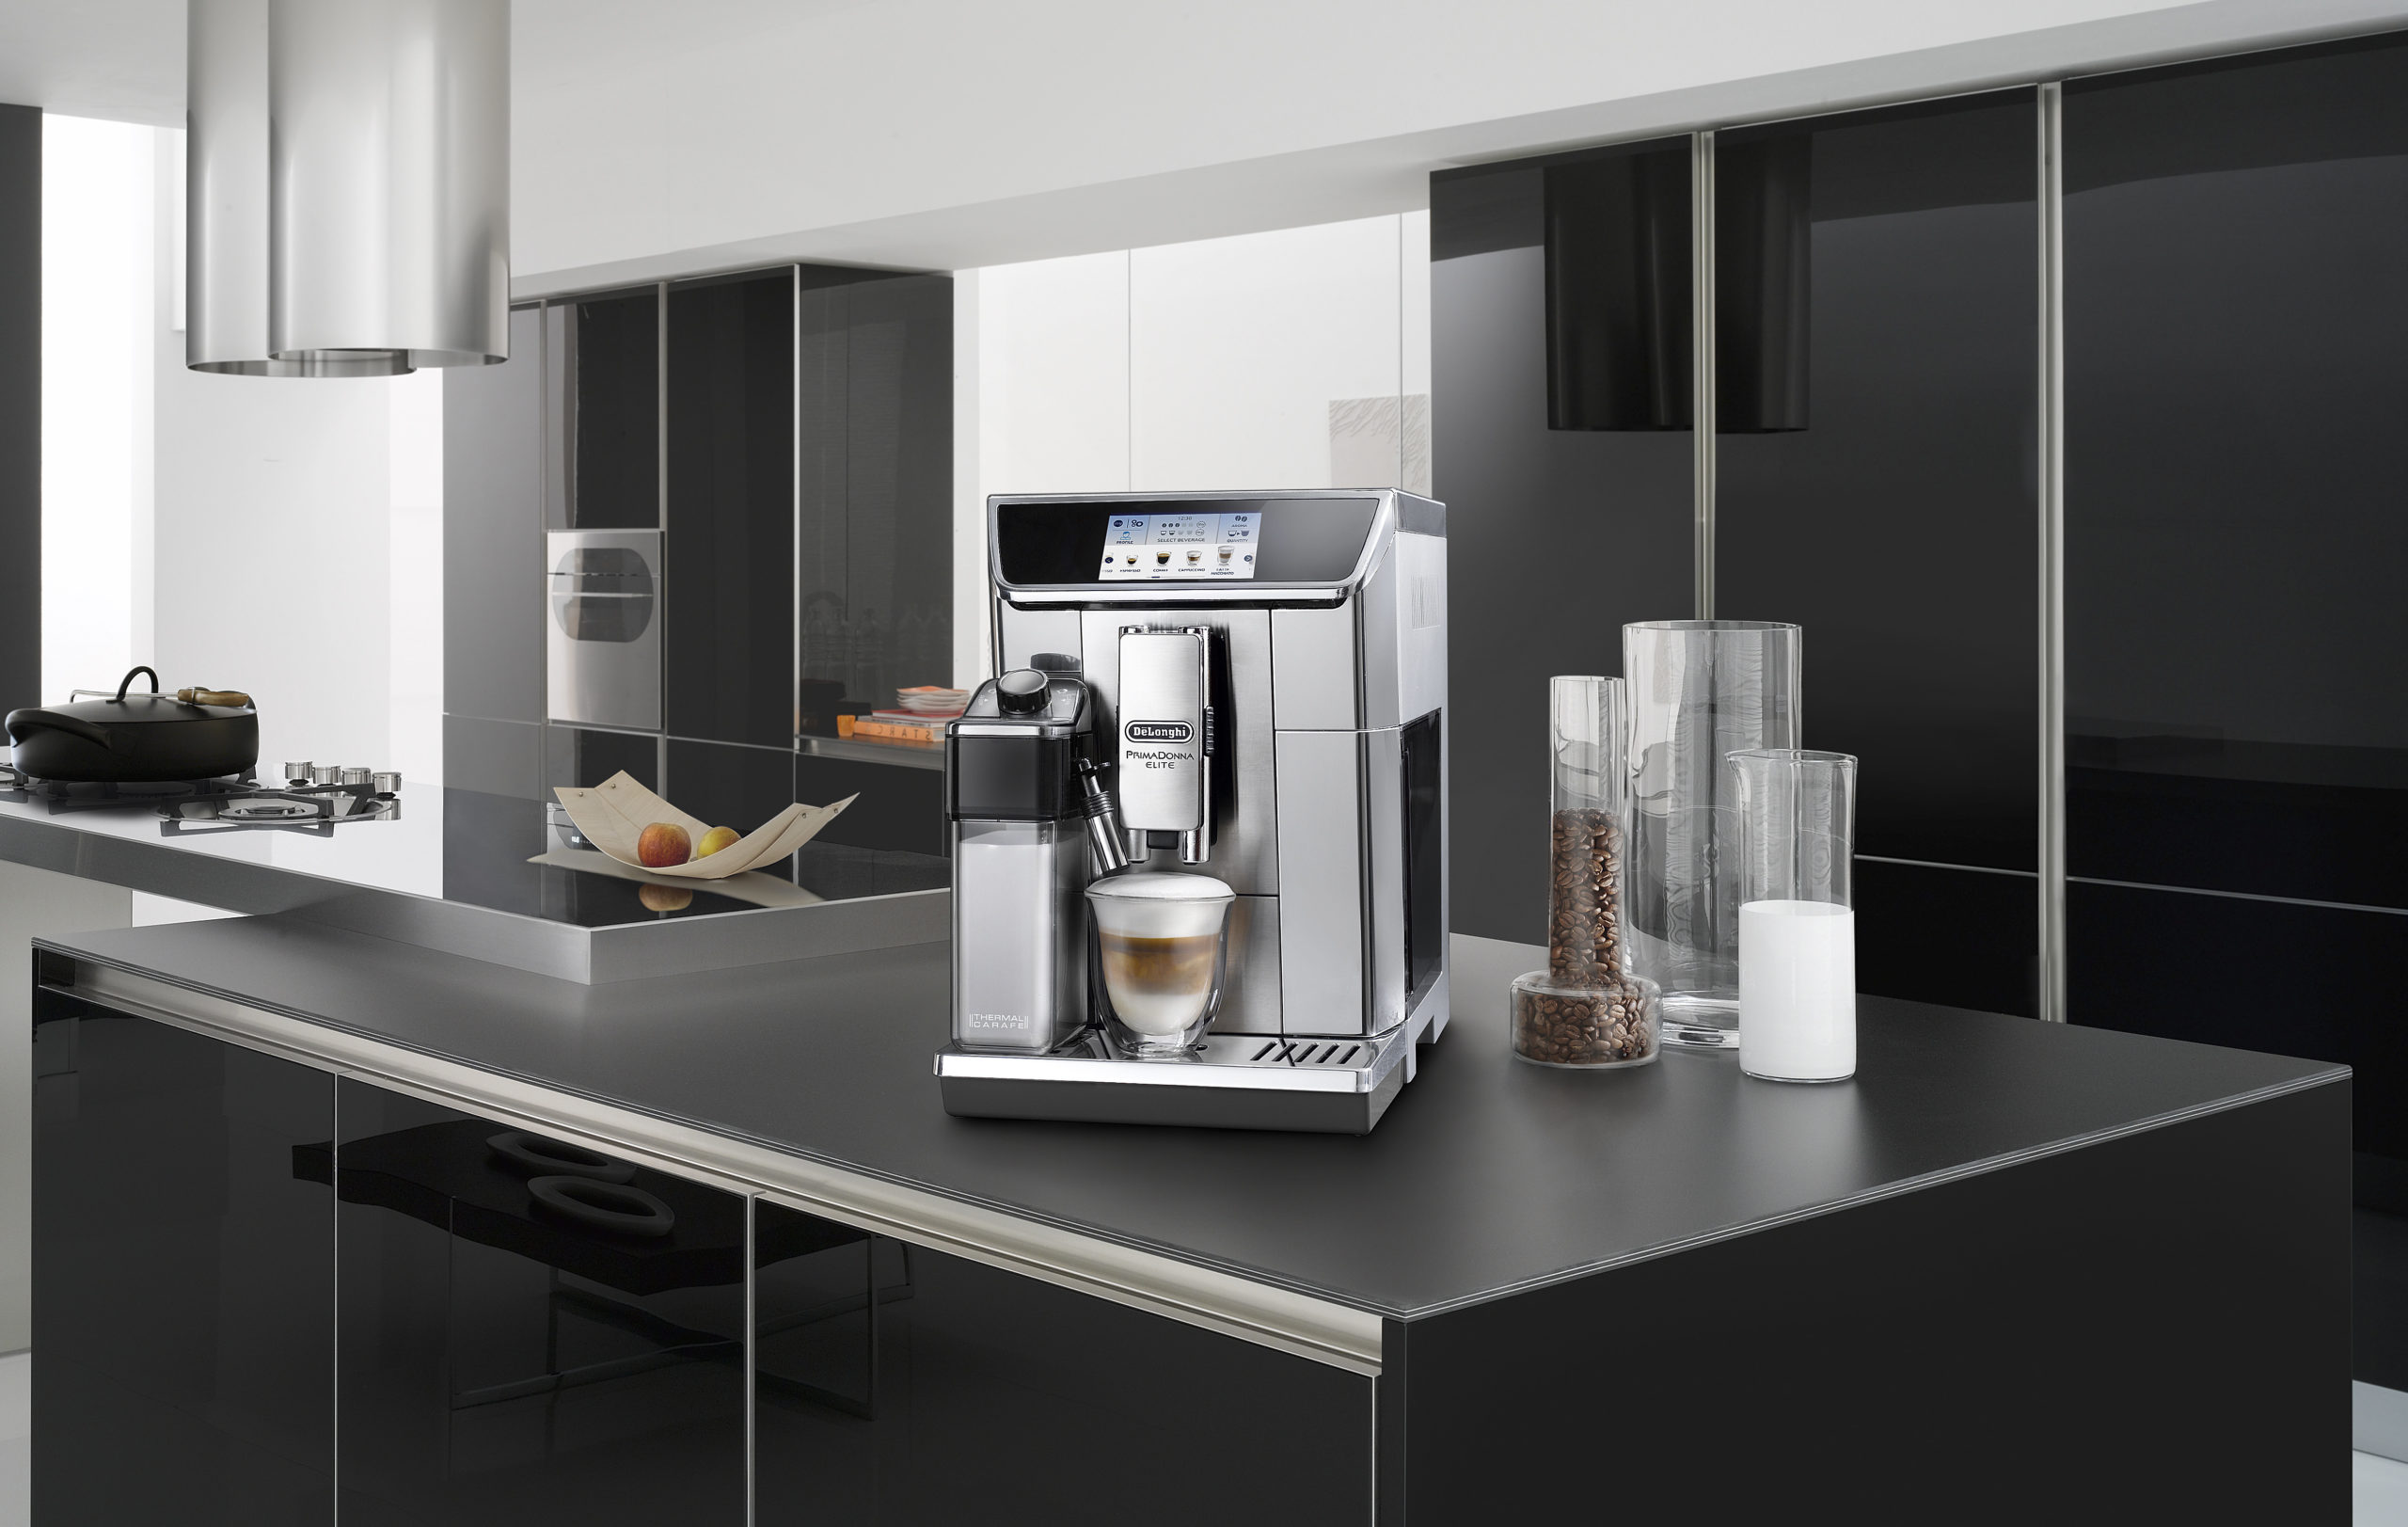 coffee machine in the kitchen